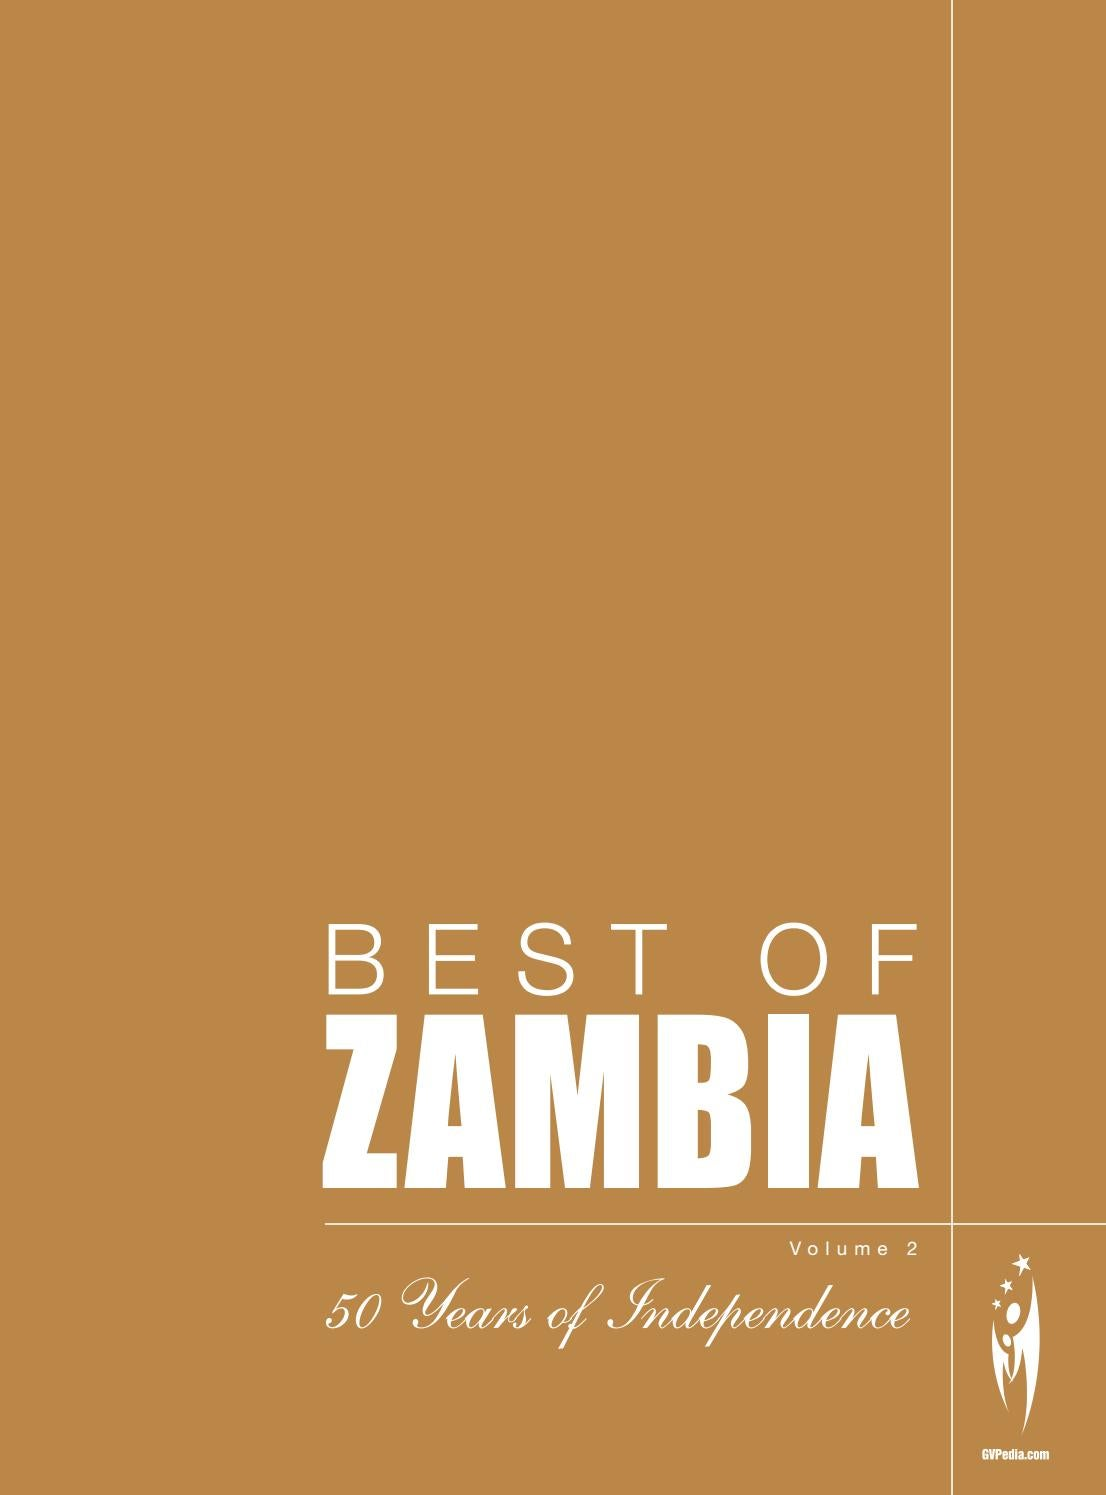 Best of zambia volume 2 by sven boermeester issuu fandeluxe Images